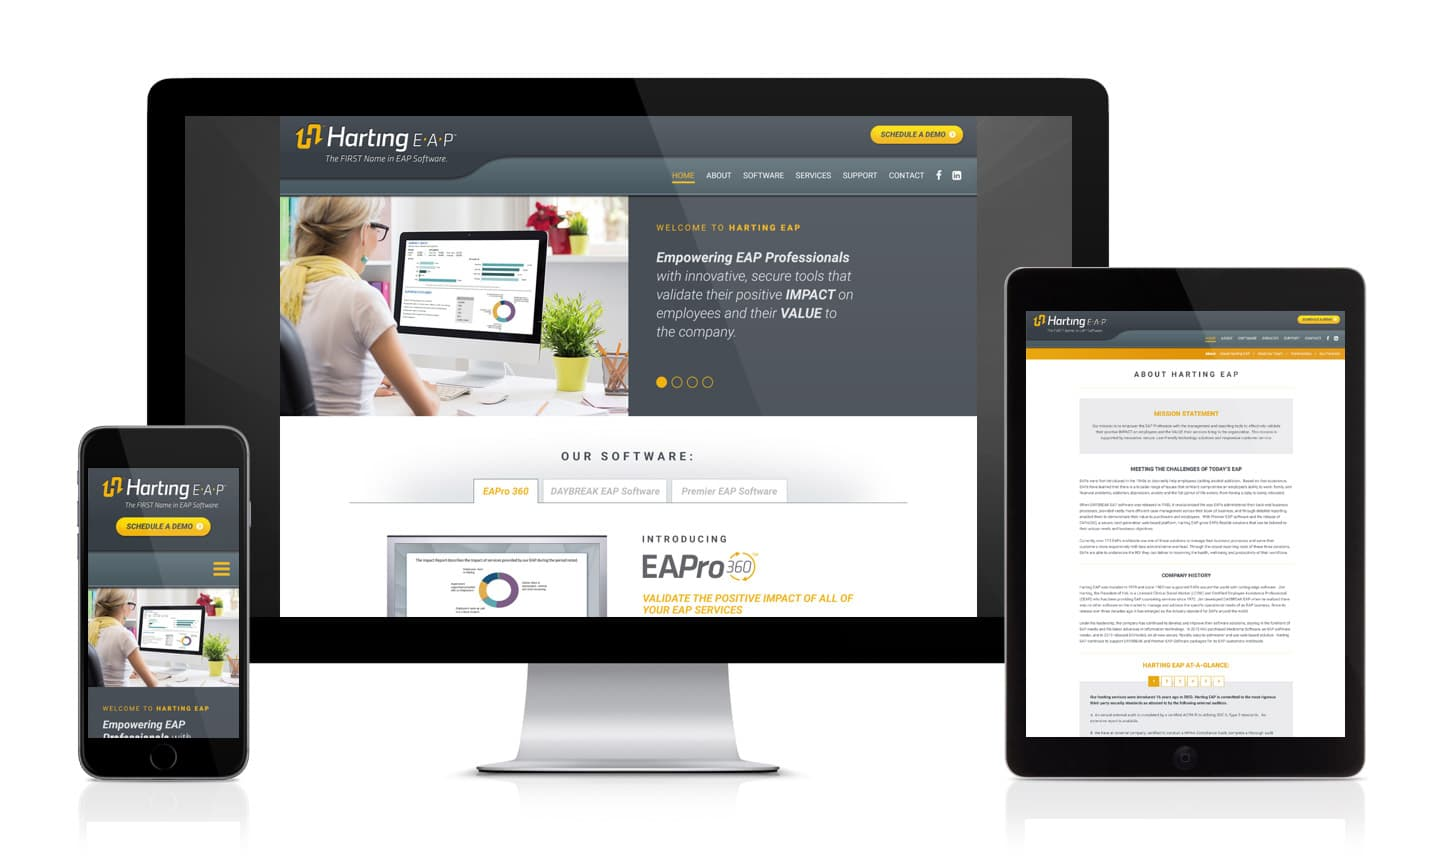 Harting EAP Website